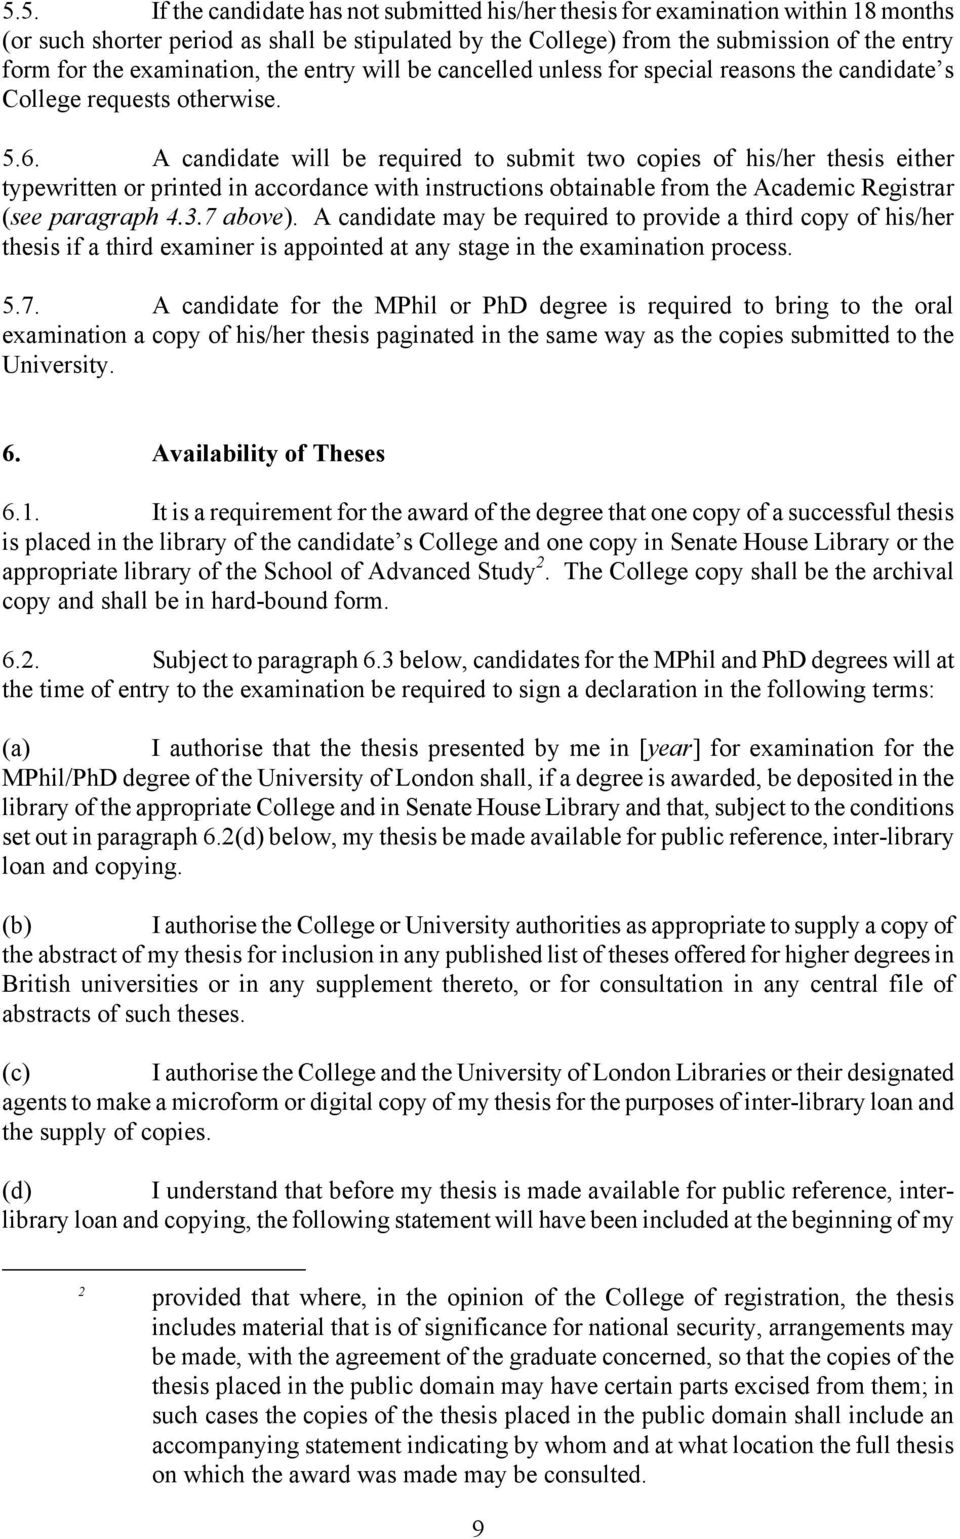 A candidate will be required to submit two copies of his/her thesis either typewritten or printed in accordance with instructions obtainable from the Academic Registrar (see paragraph 4.3.7 above).